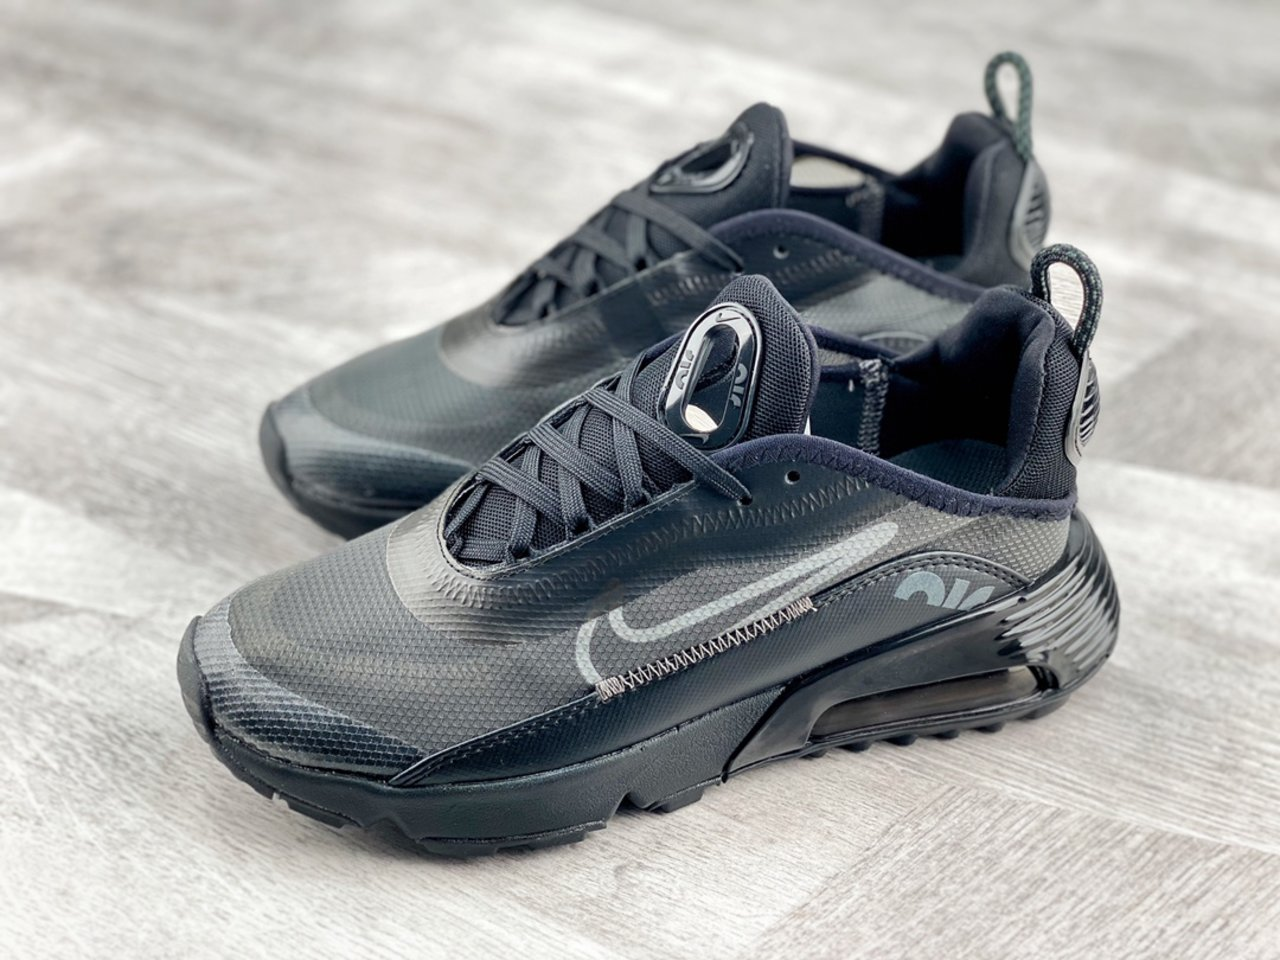 Fashion Nike Air Max 2090 Black Wolf Grey Outlet Sale BV9977-001 overall